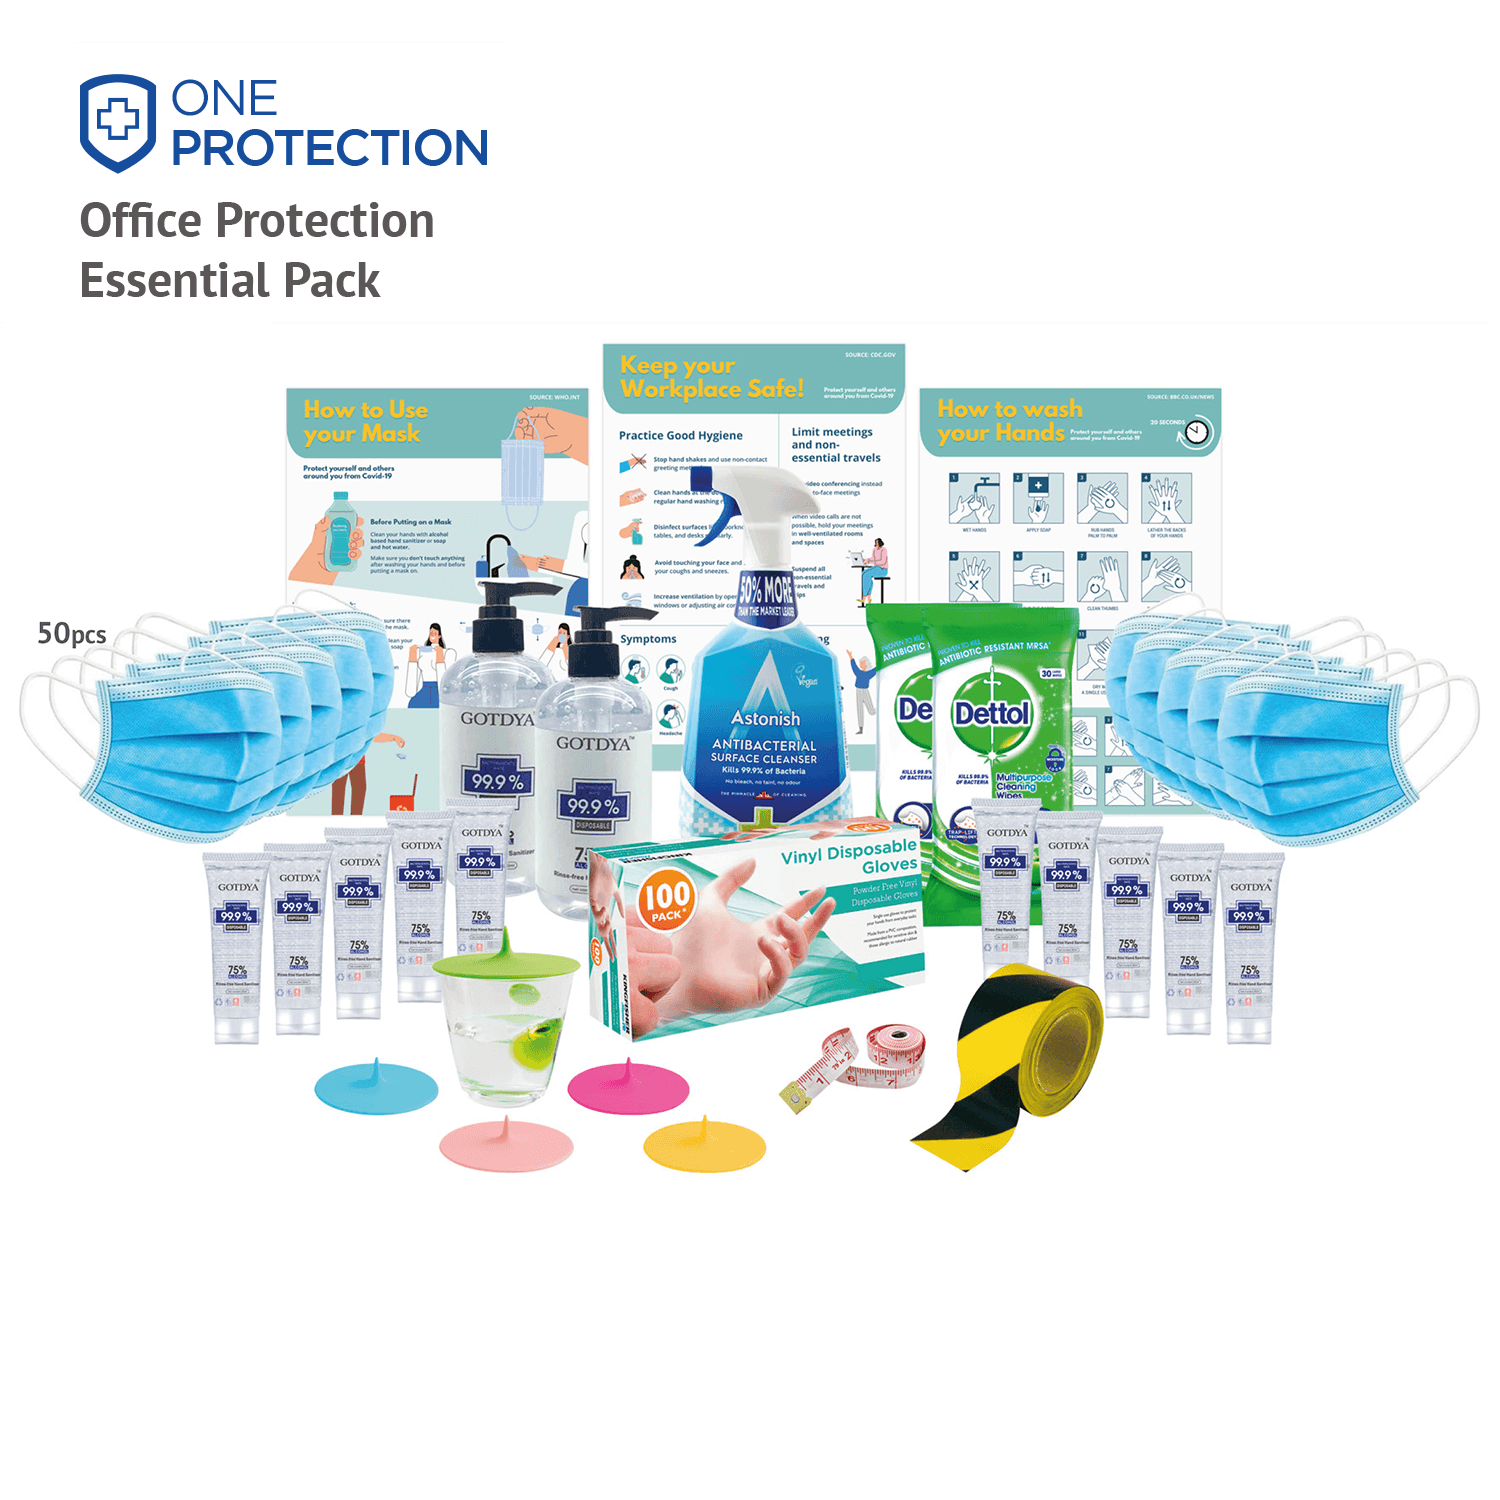 Office Protection Essentials Pack